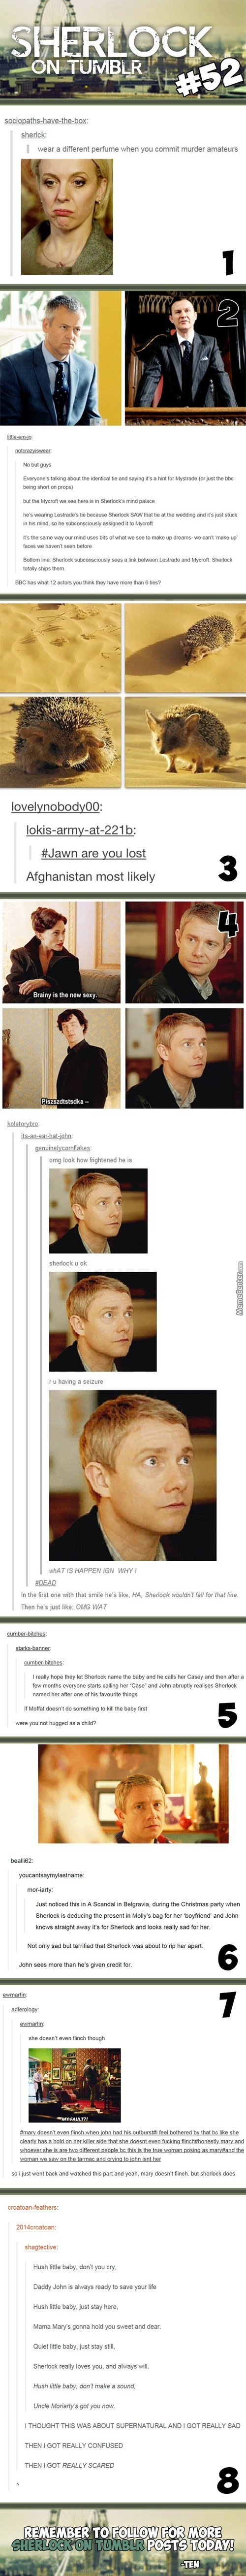 Sherlock On Tumblr #52